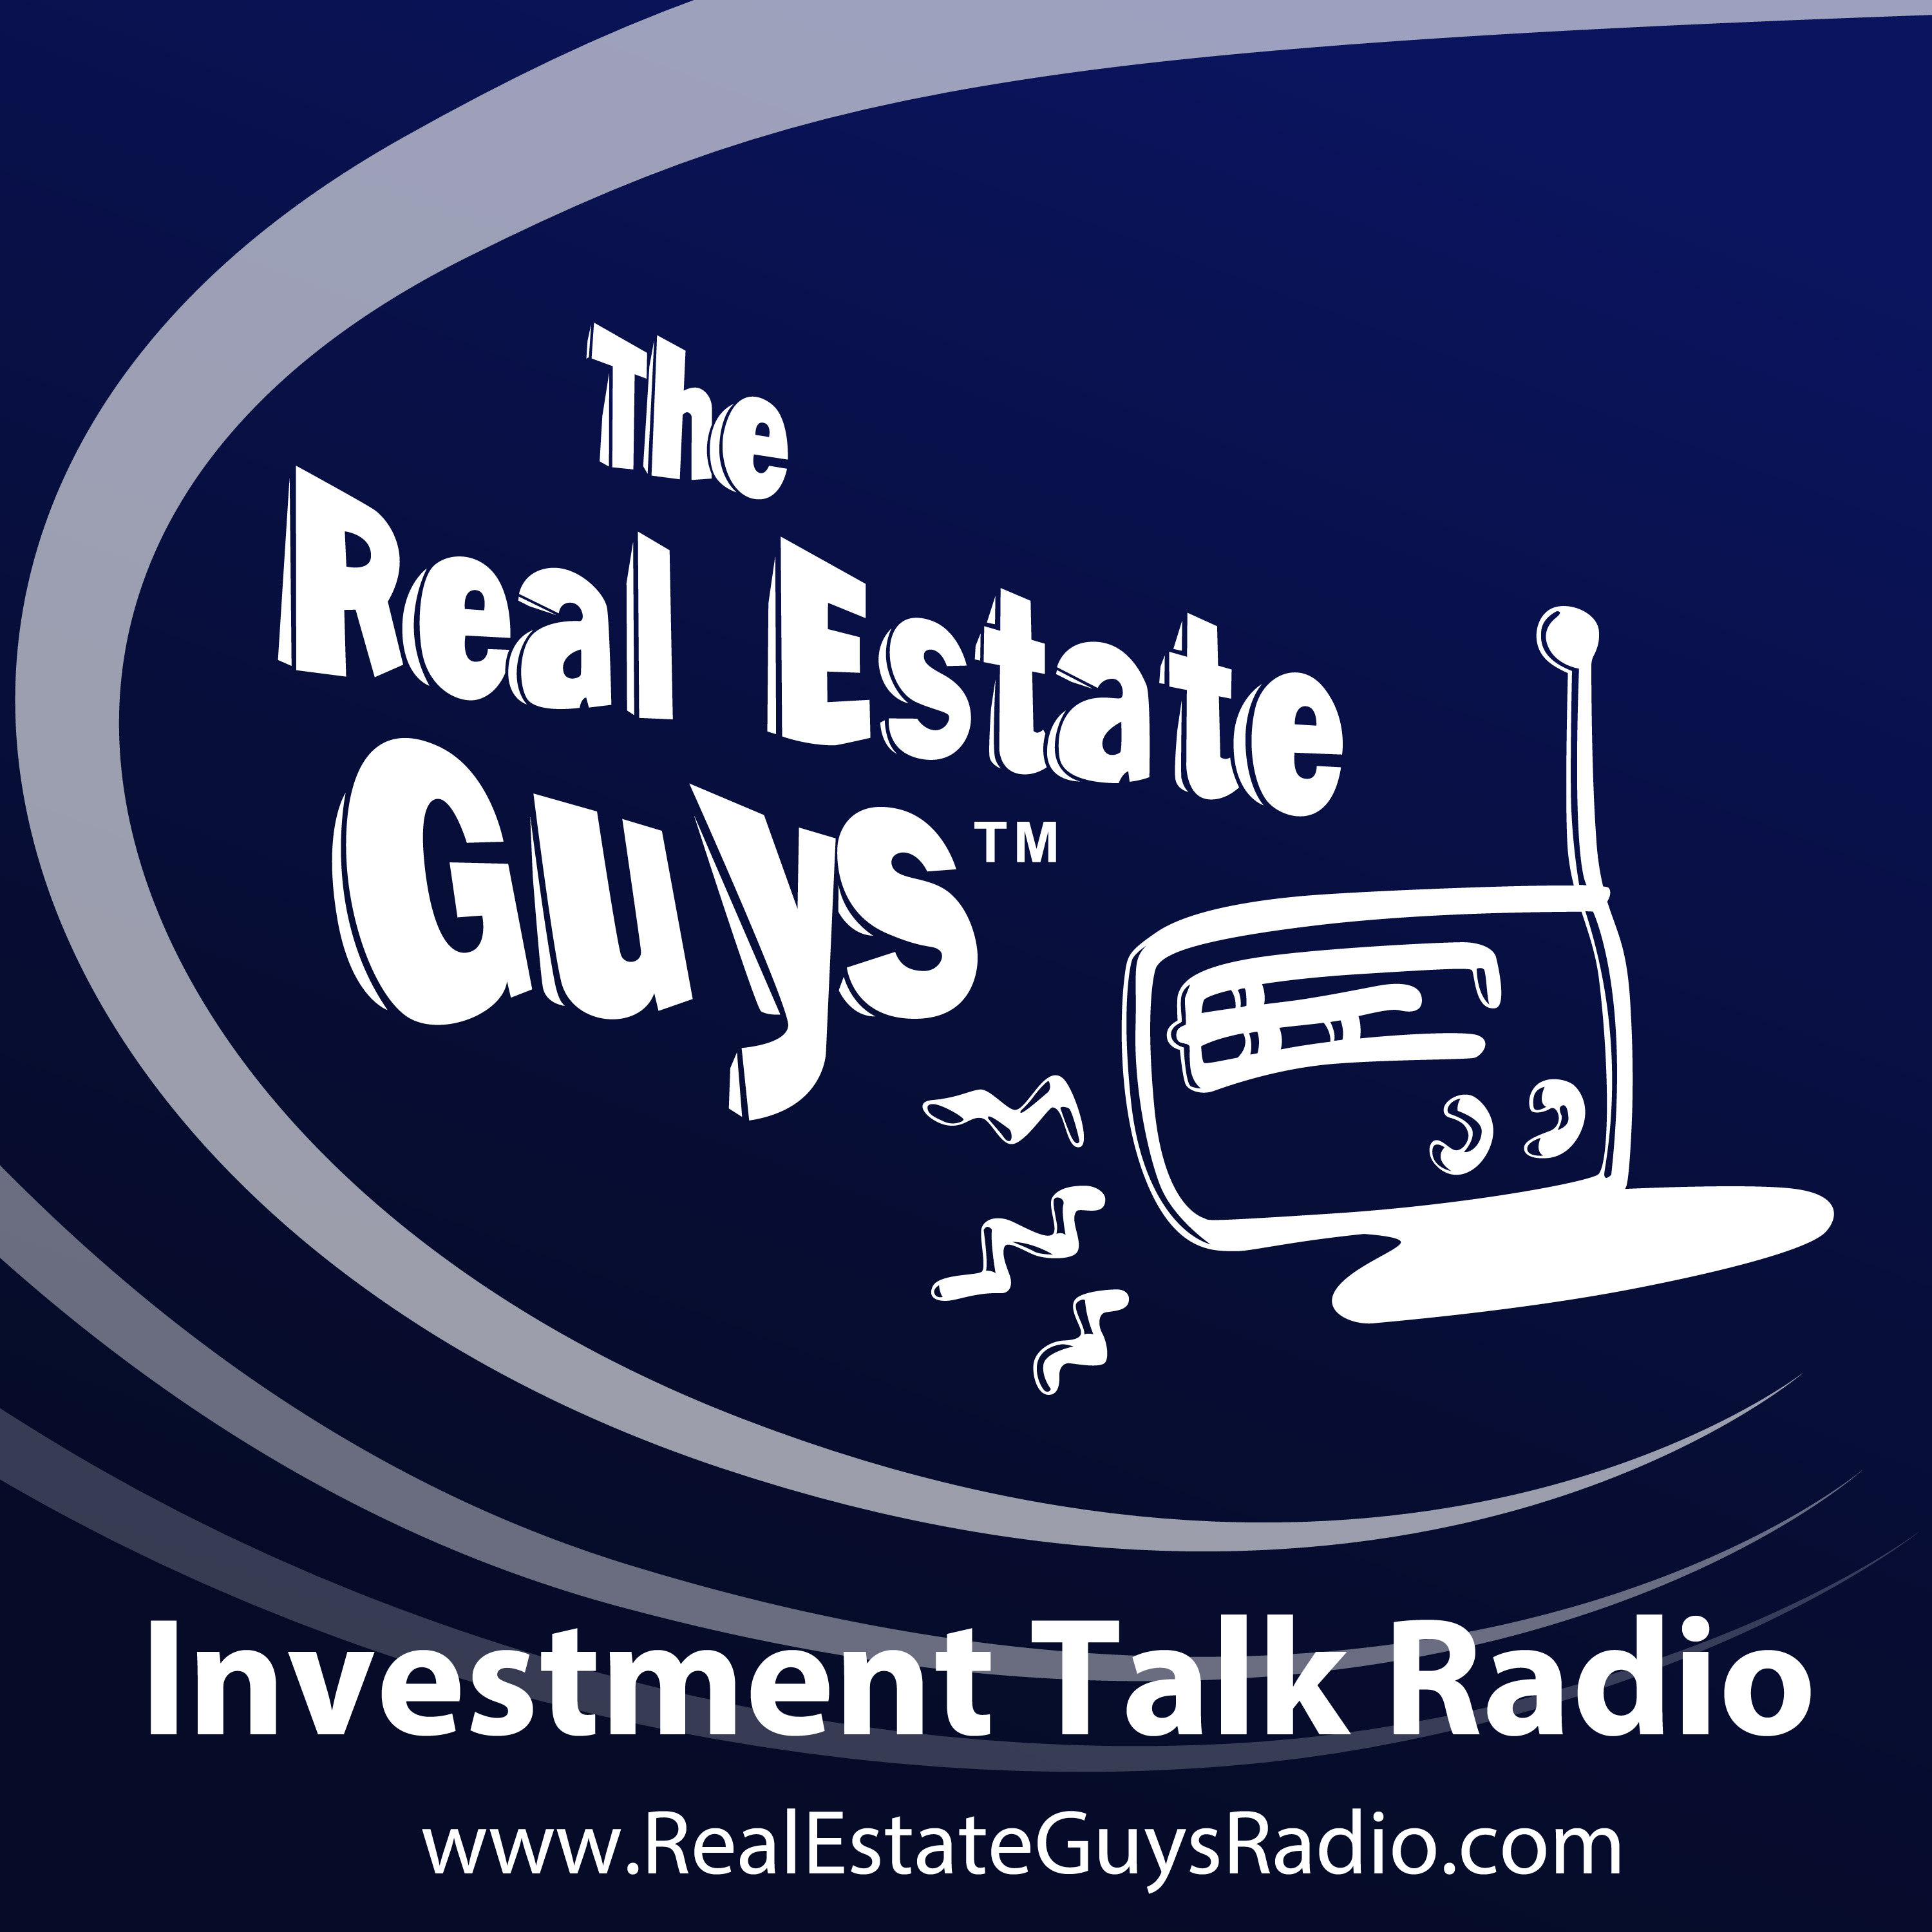 Ask The Guys - Market Indicators, Wholesaling, and Raising Money